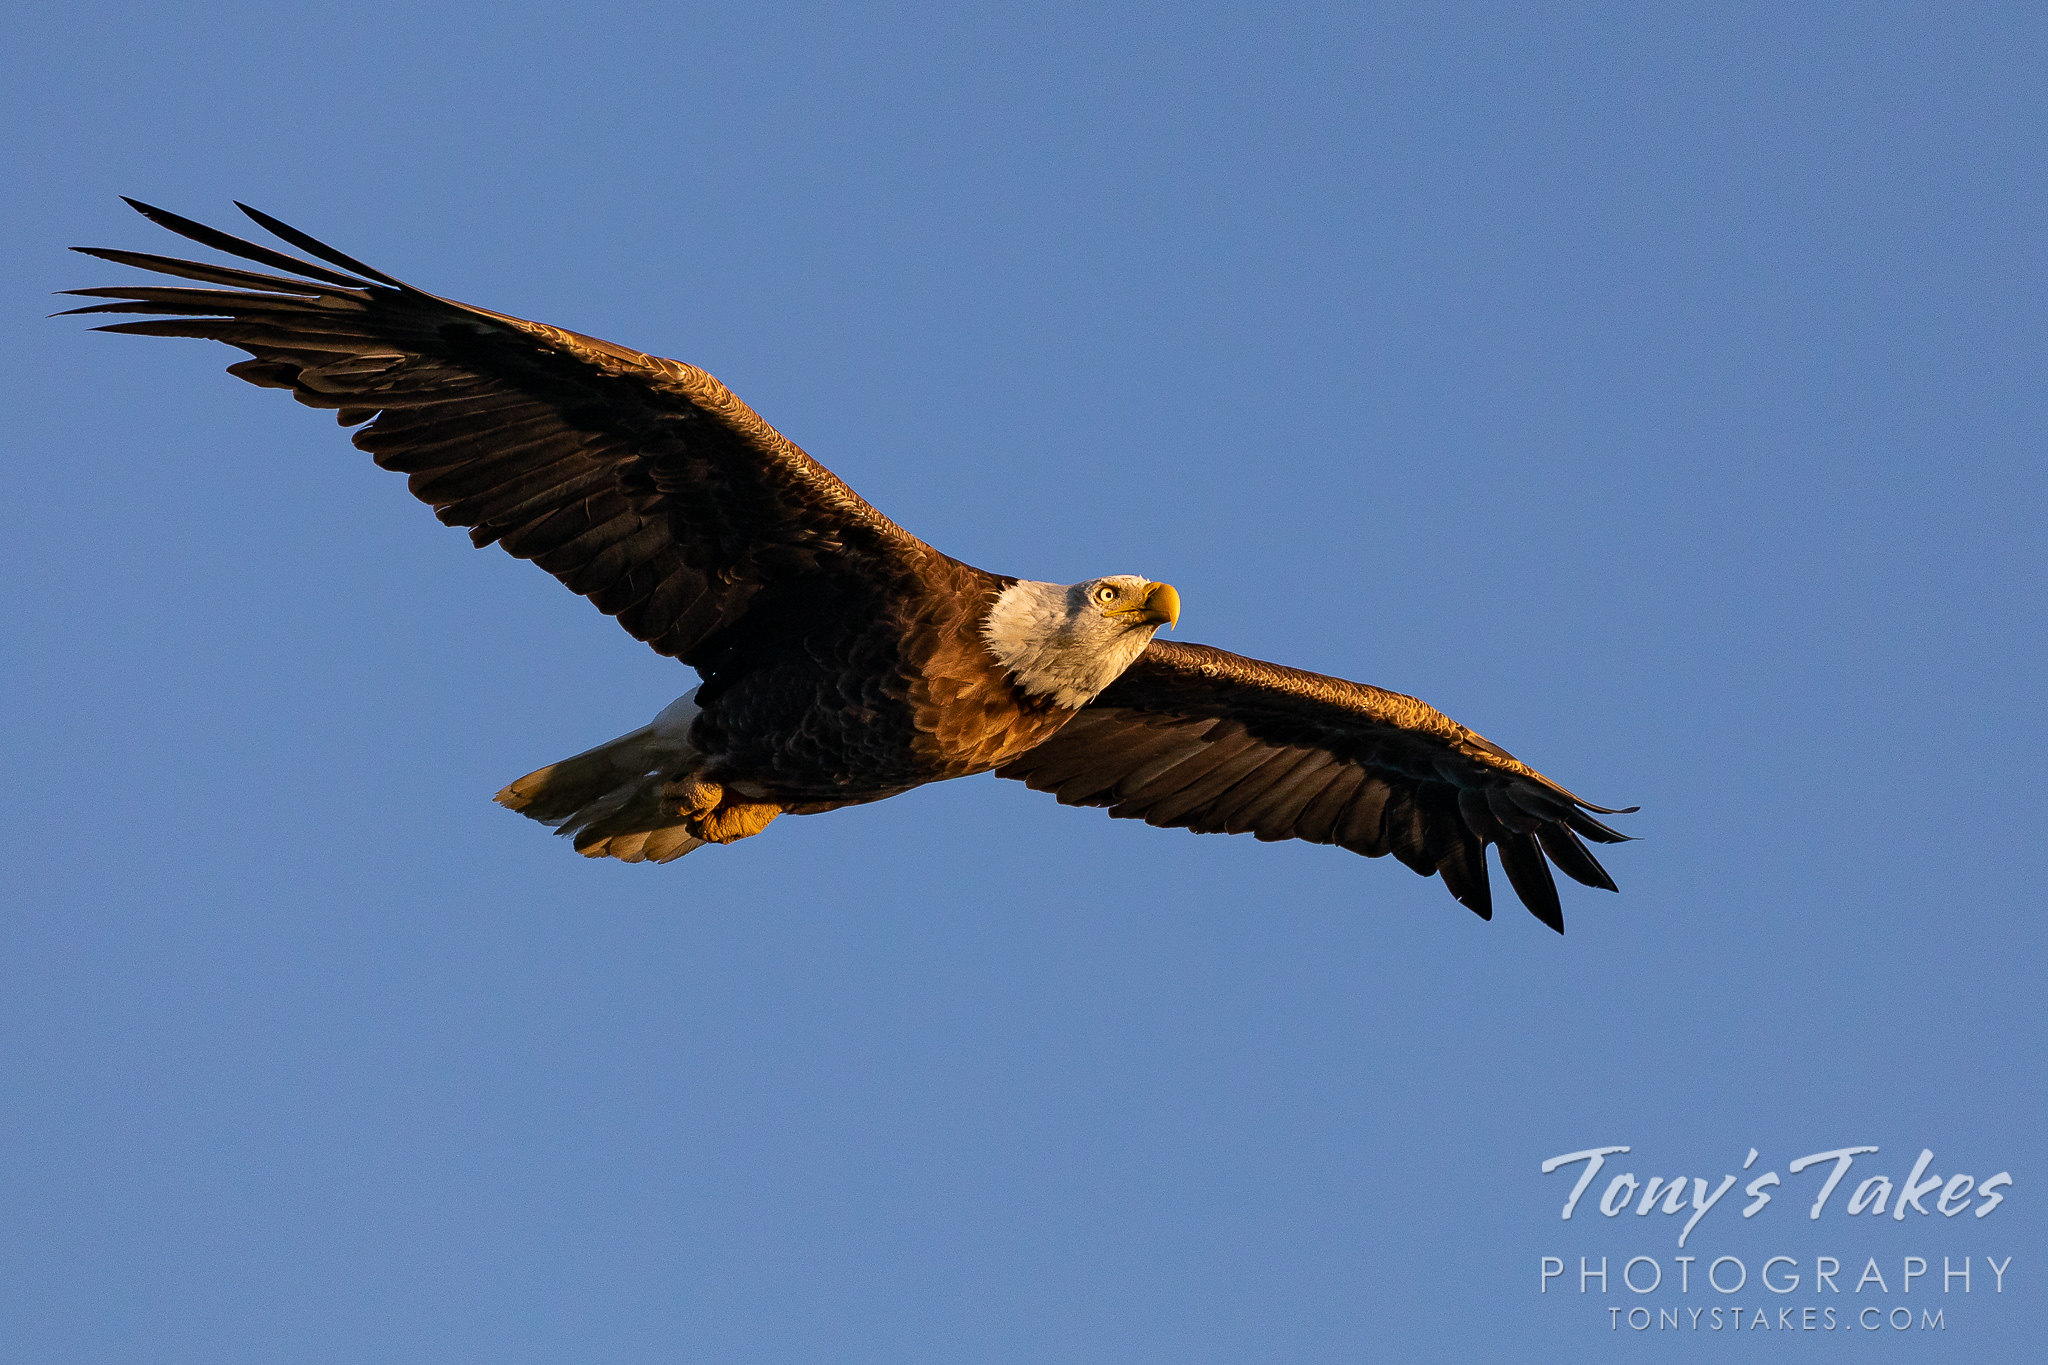 Bald eagle flyby in dawn's early light